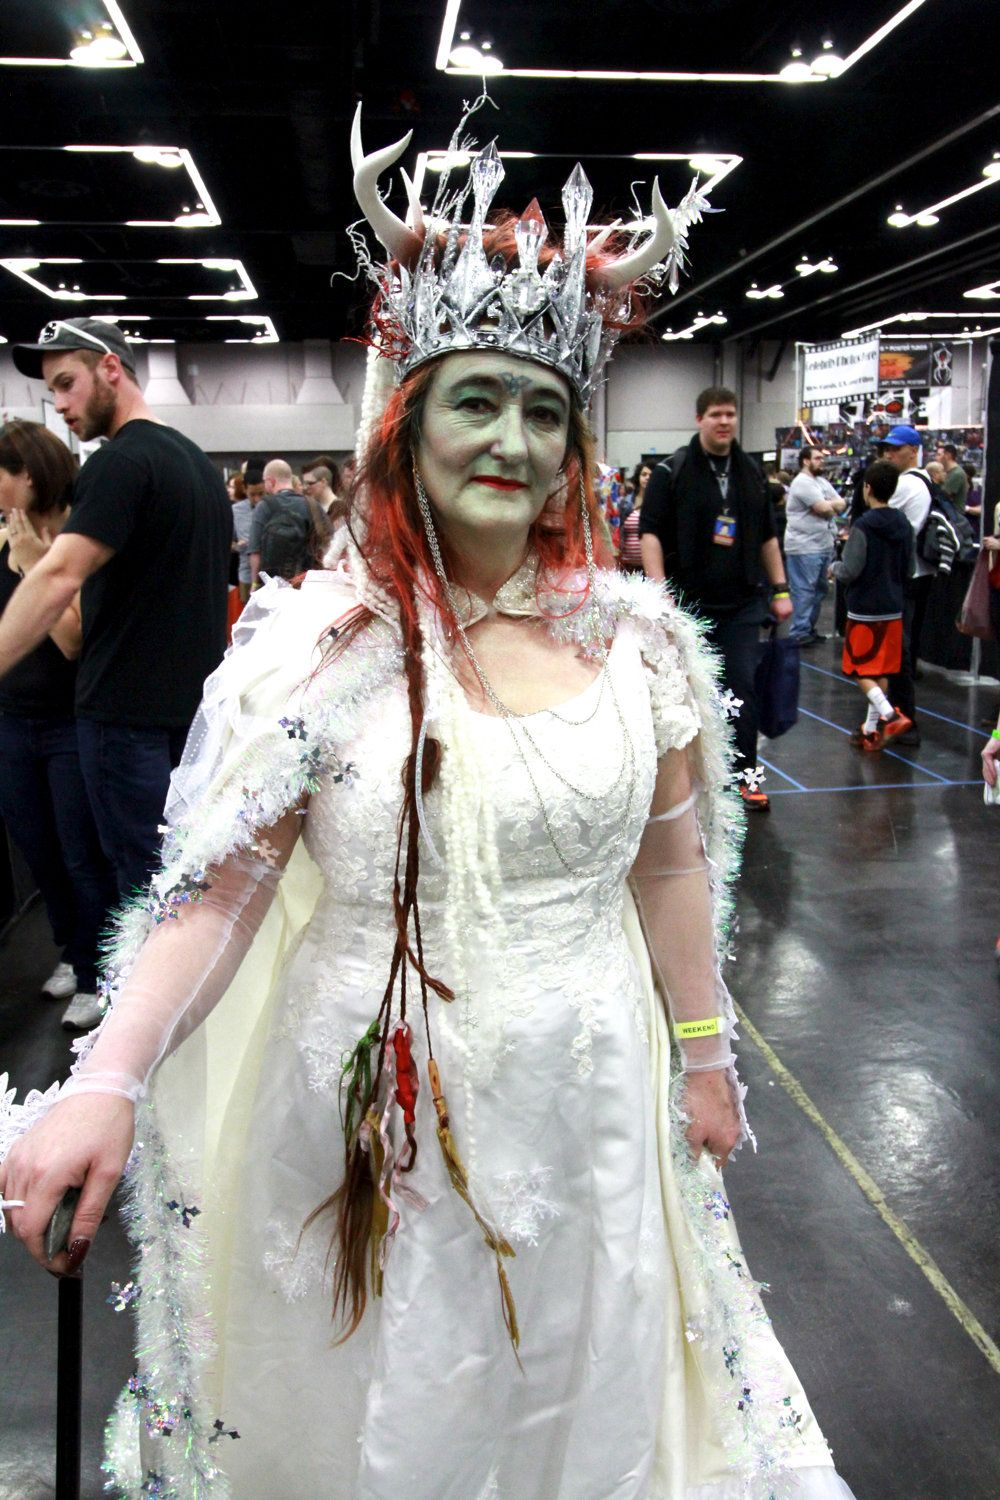 5 out-of-this-world costumes from Wizard World 2016 and the humans ...